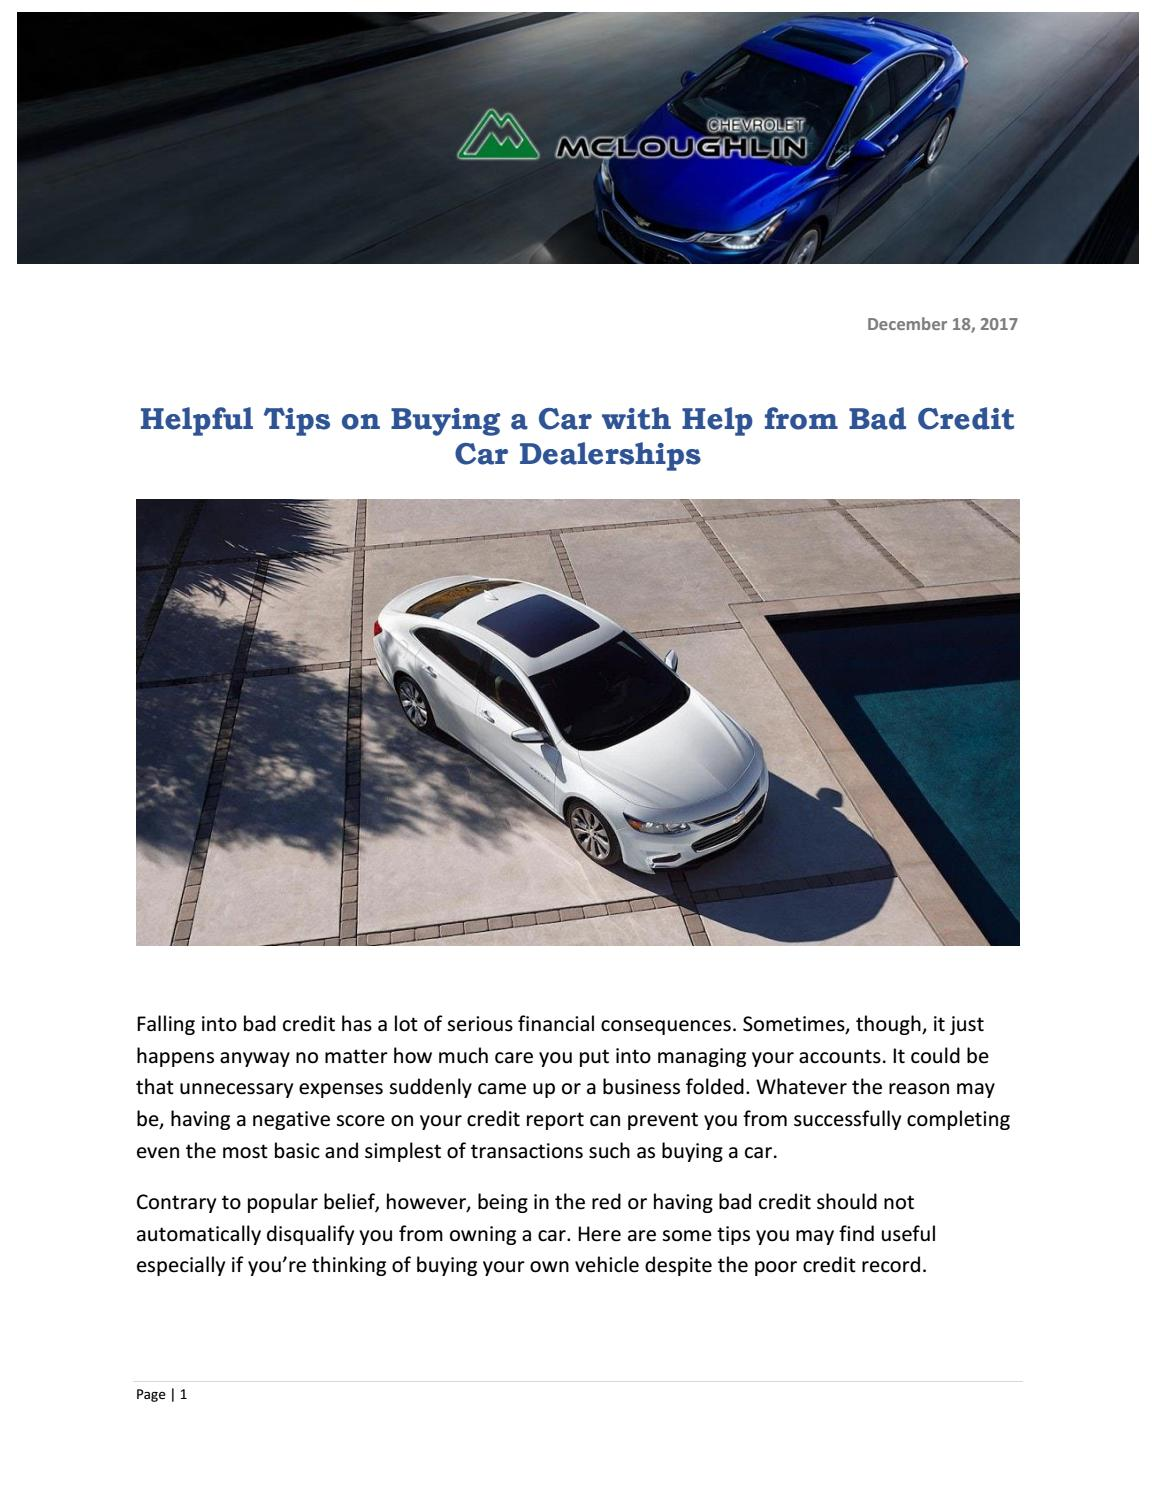 Bad Credit Car Dealerships >> Helpful Tips On Buying A Car With Help From Bad Credit Car